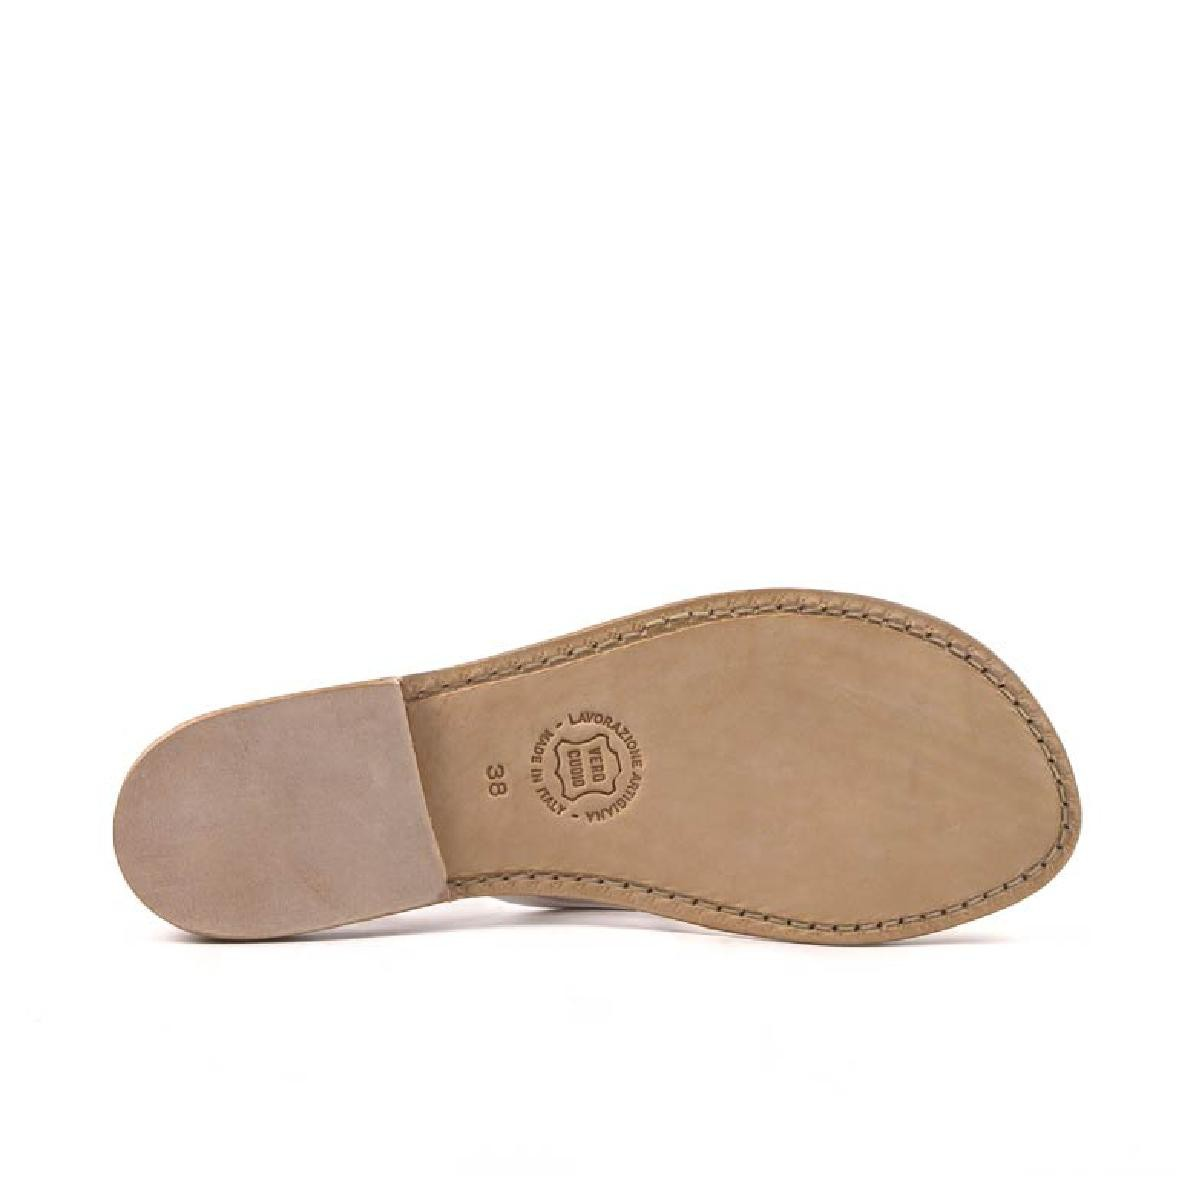 3c8661e303db83 Handmade womens silver flat sandals thongs with leather sole. Previous. Next